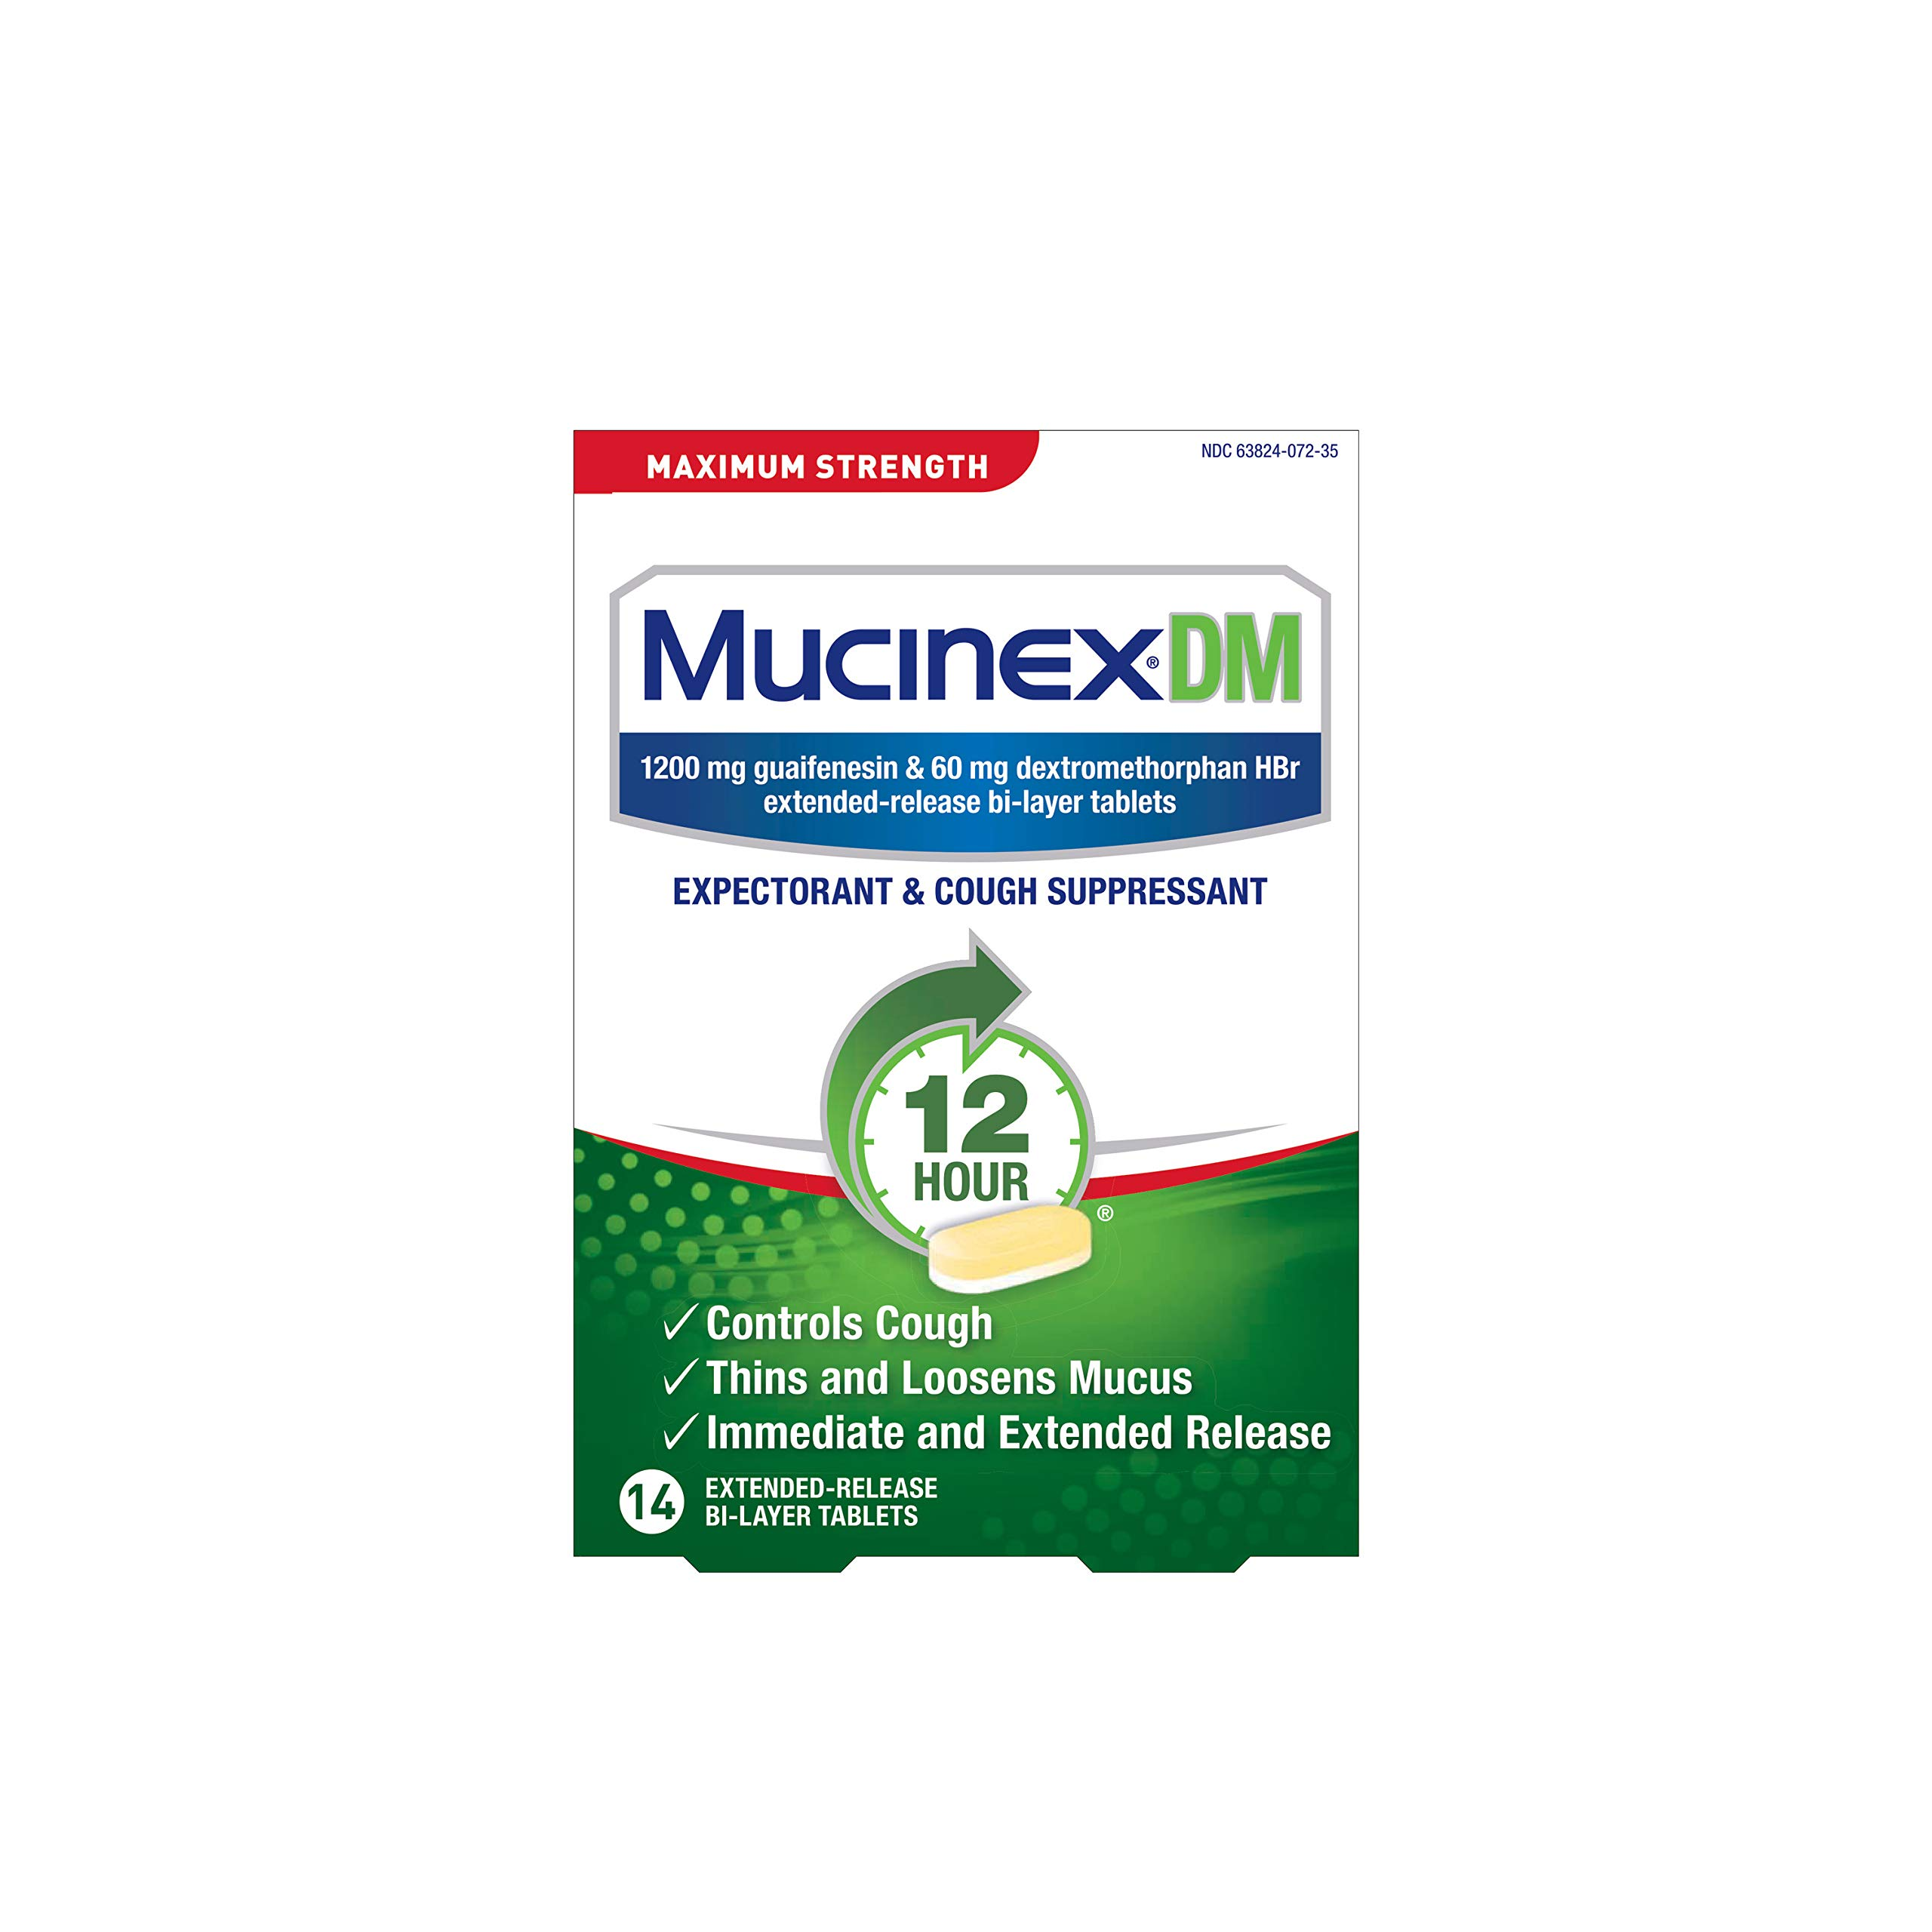 Cough Suppressant and Expectorant, Mucinex DM Maximum Strength 12 Hour Tablets, 14ct, 1200 mg Guaifenesin, Relieves Chest Congestion, Quiets Wet and Dry Cough, #1 Doctor Recommended OTC expectorant